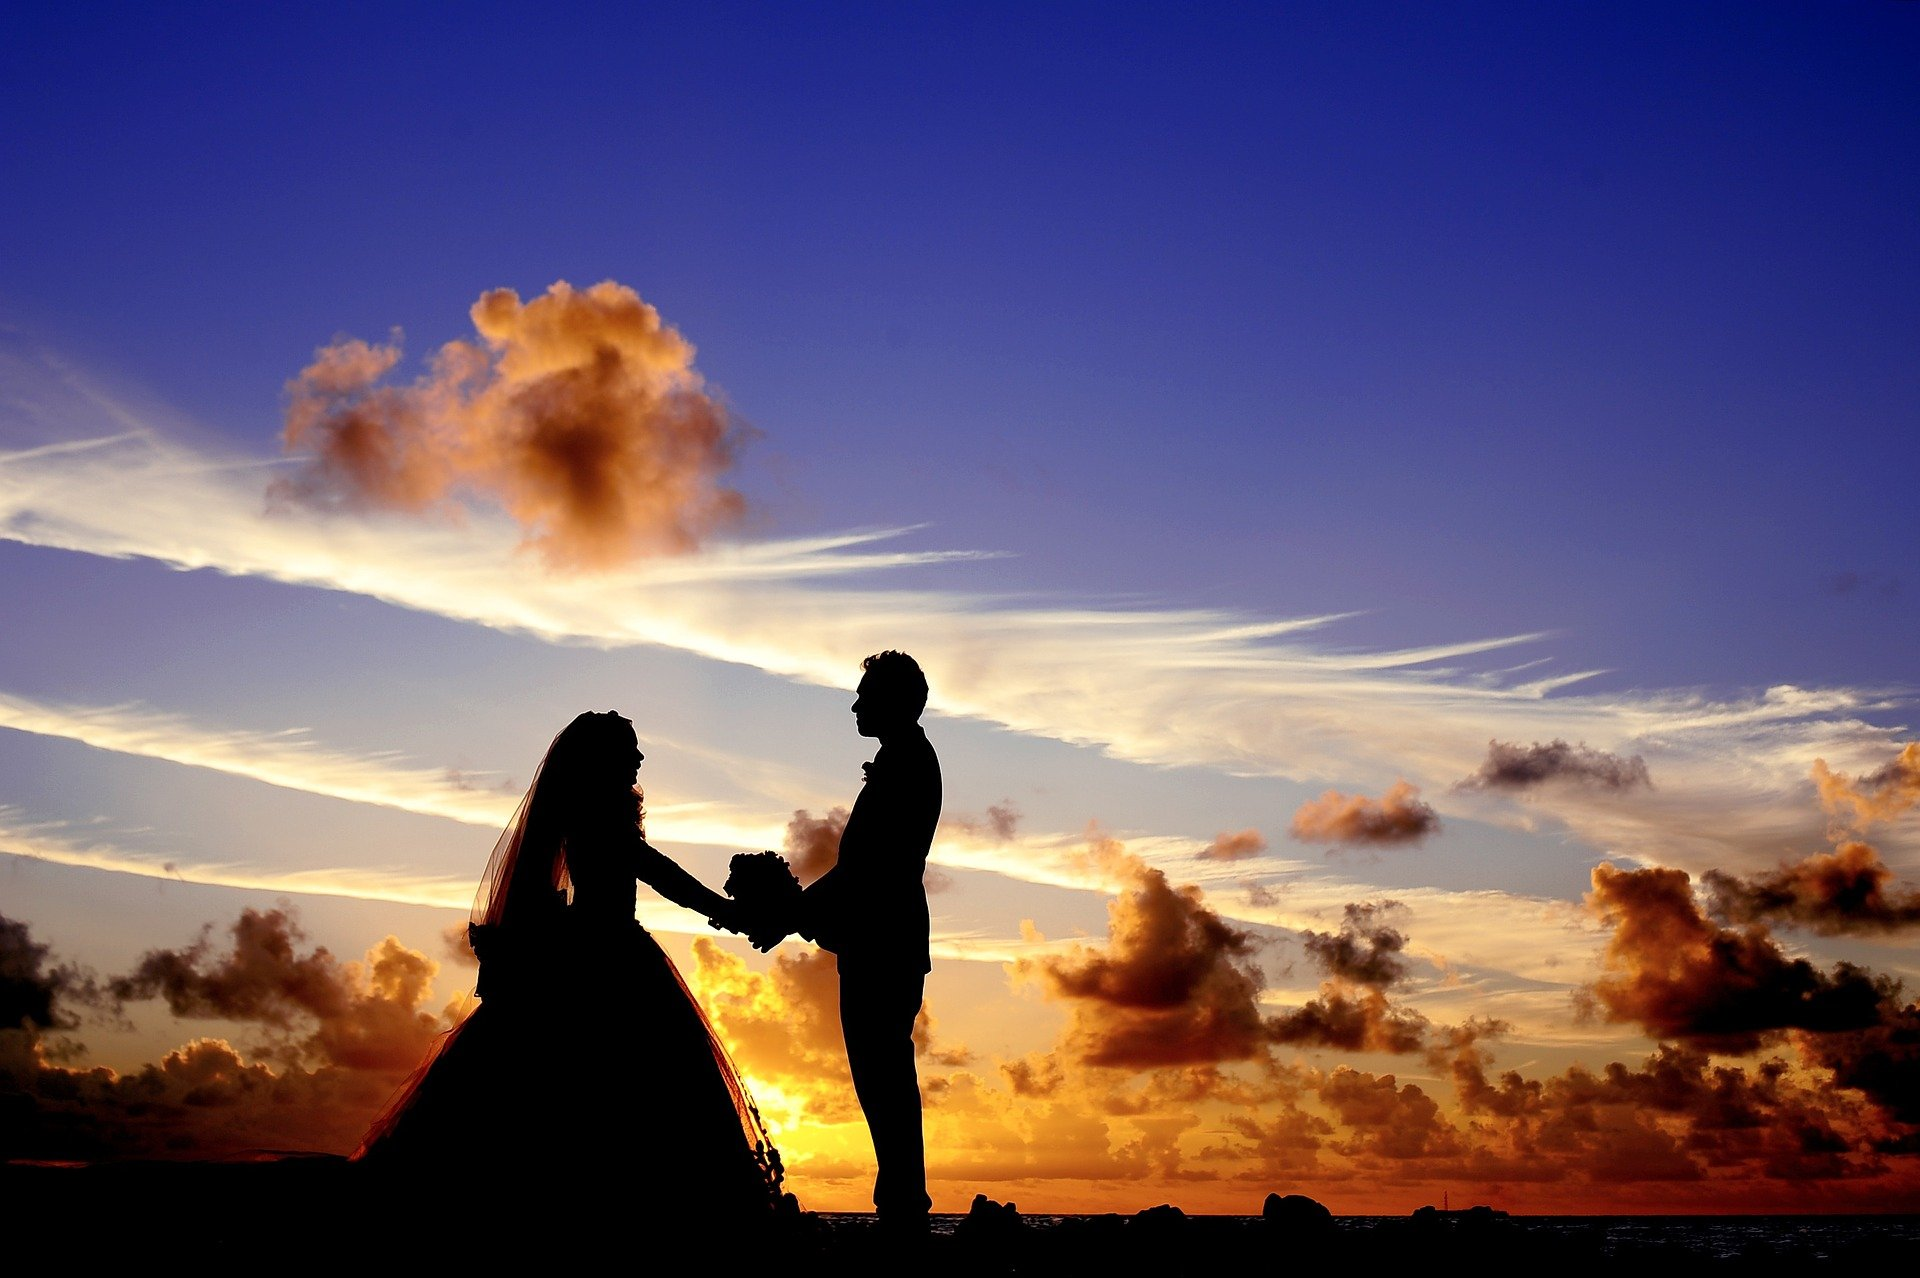 A couple getting married against the sunset. | Source: Pixabay.